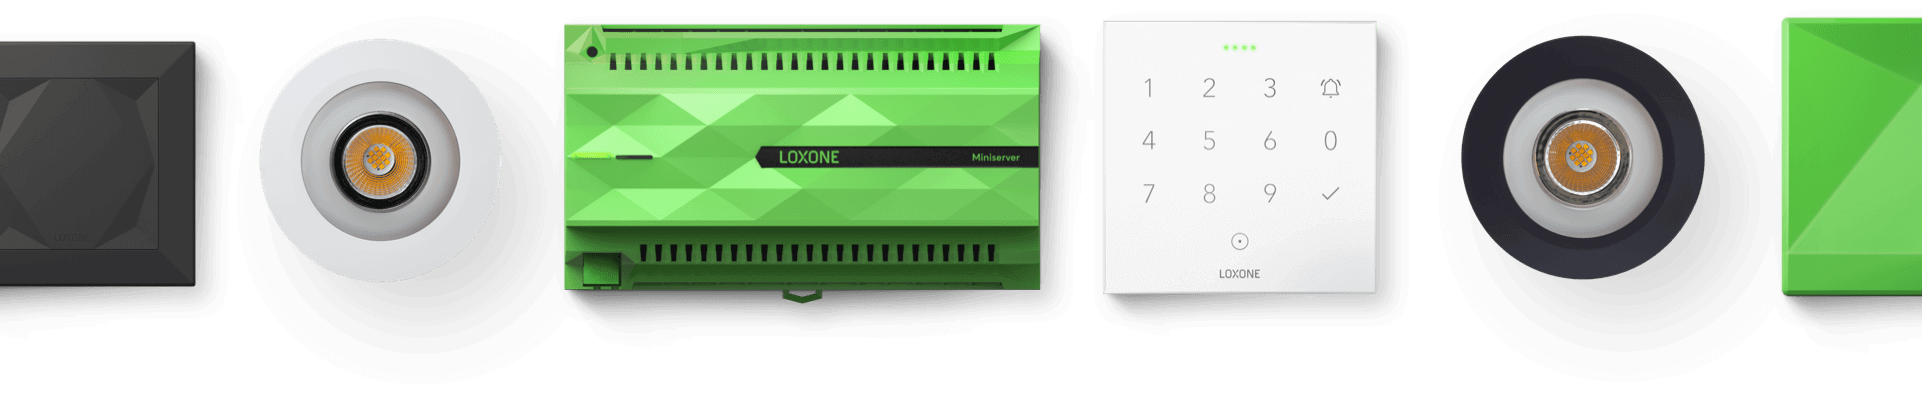 Banner of Loxone products